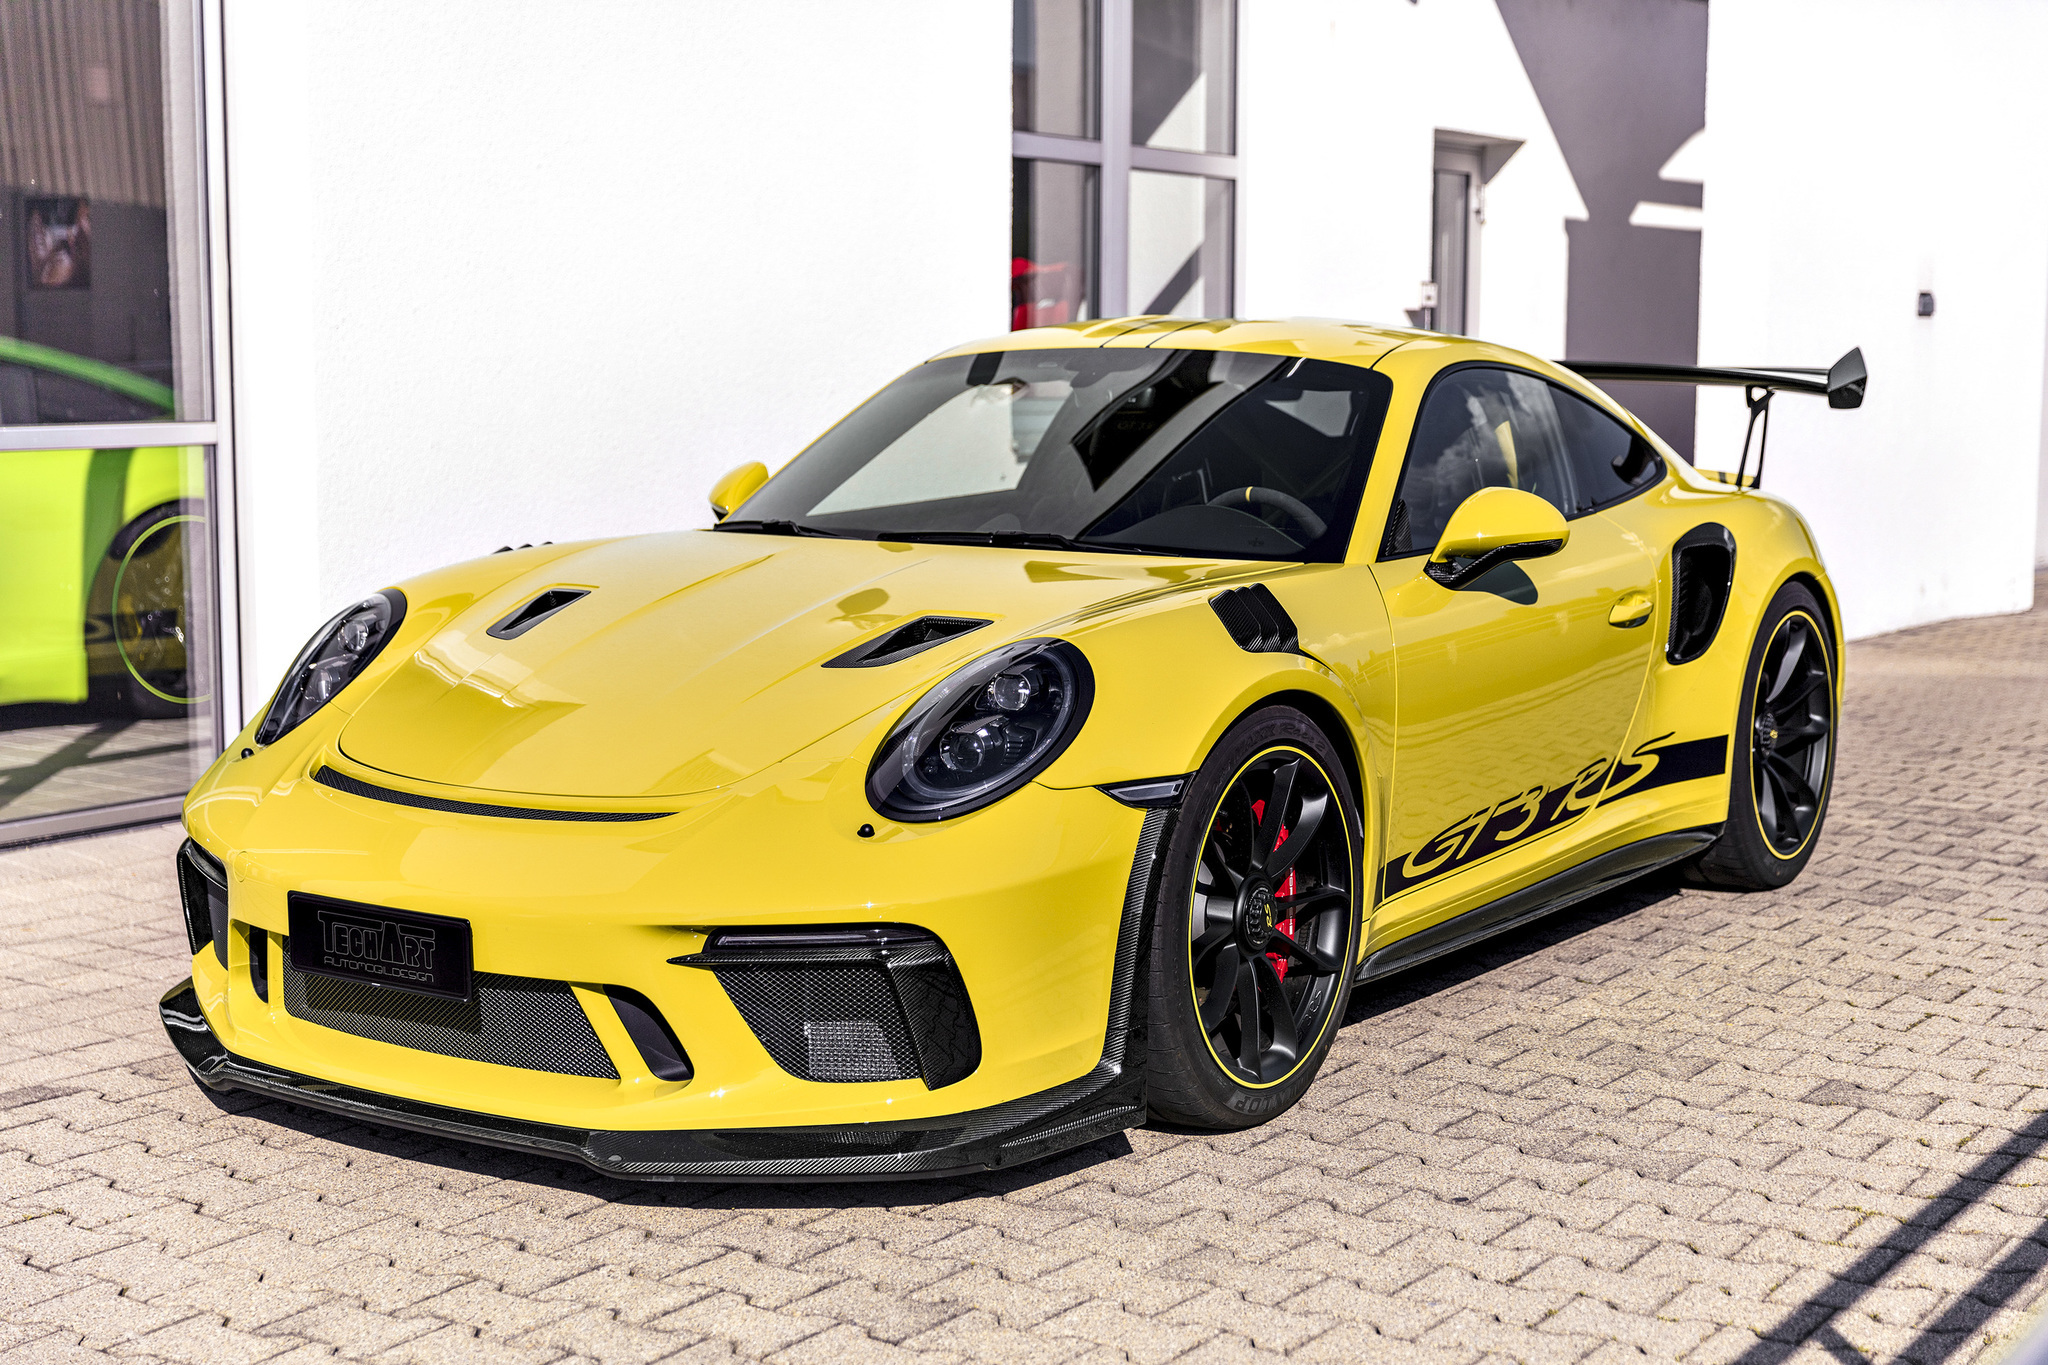 Techart Carbon body kit for Porsche 911 GT3